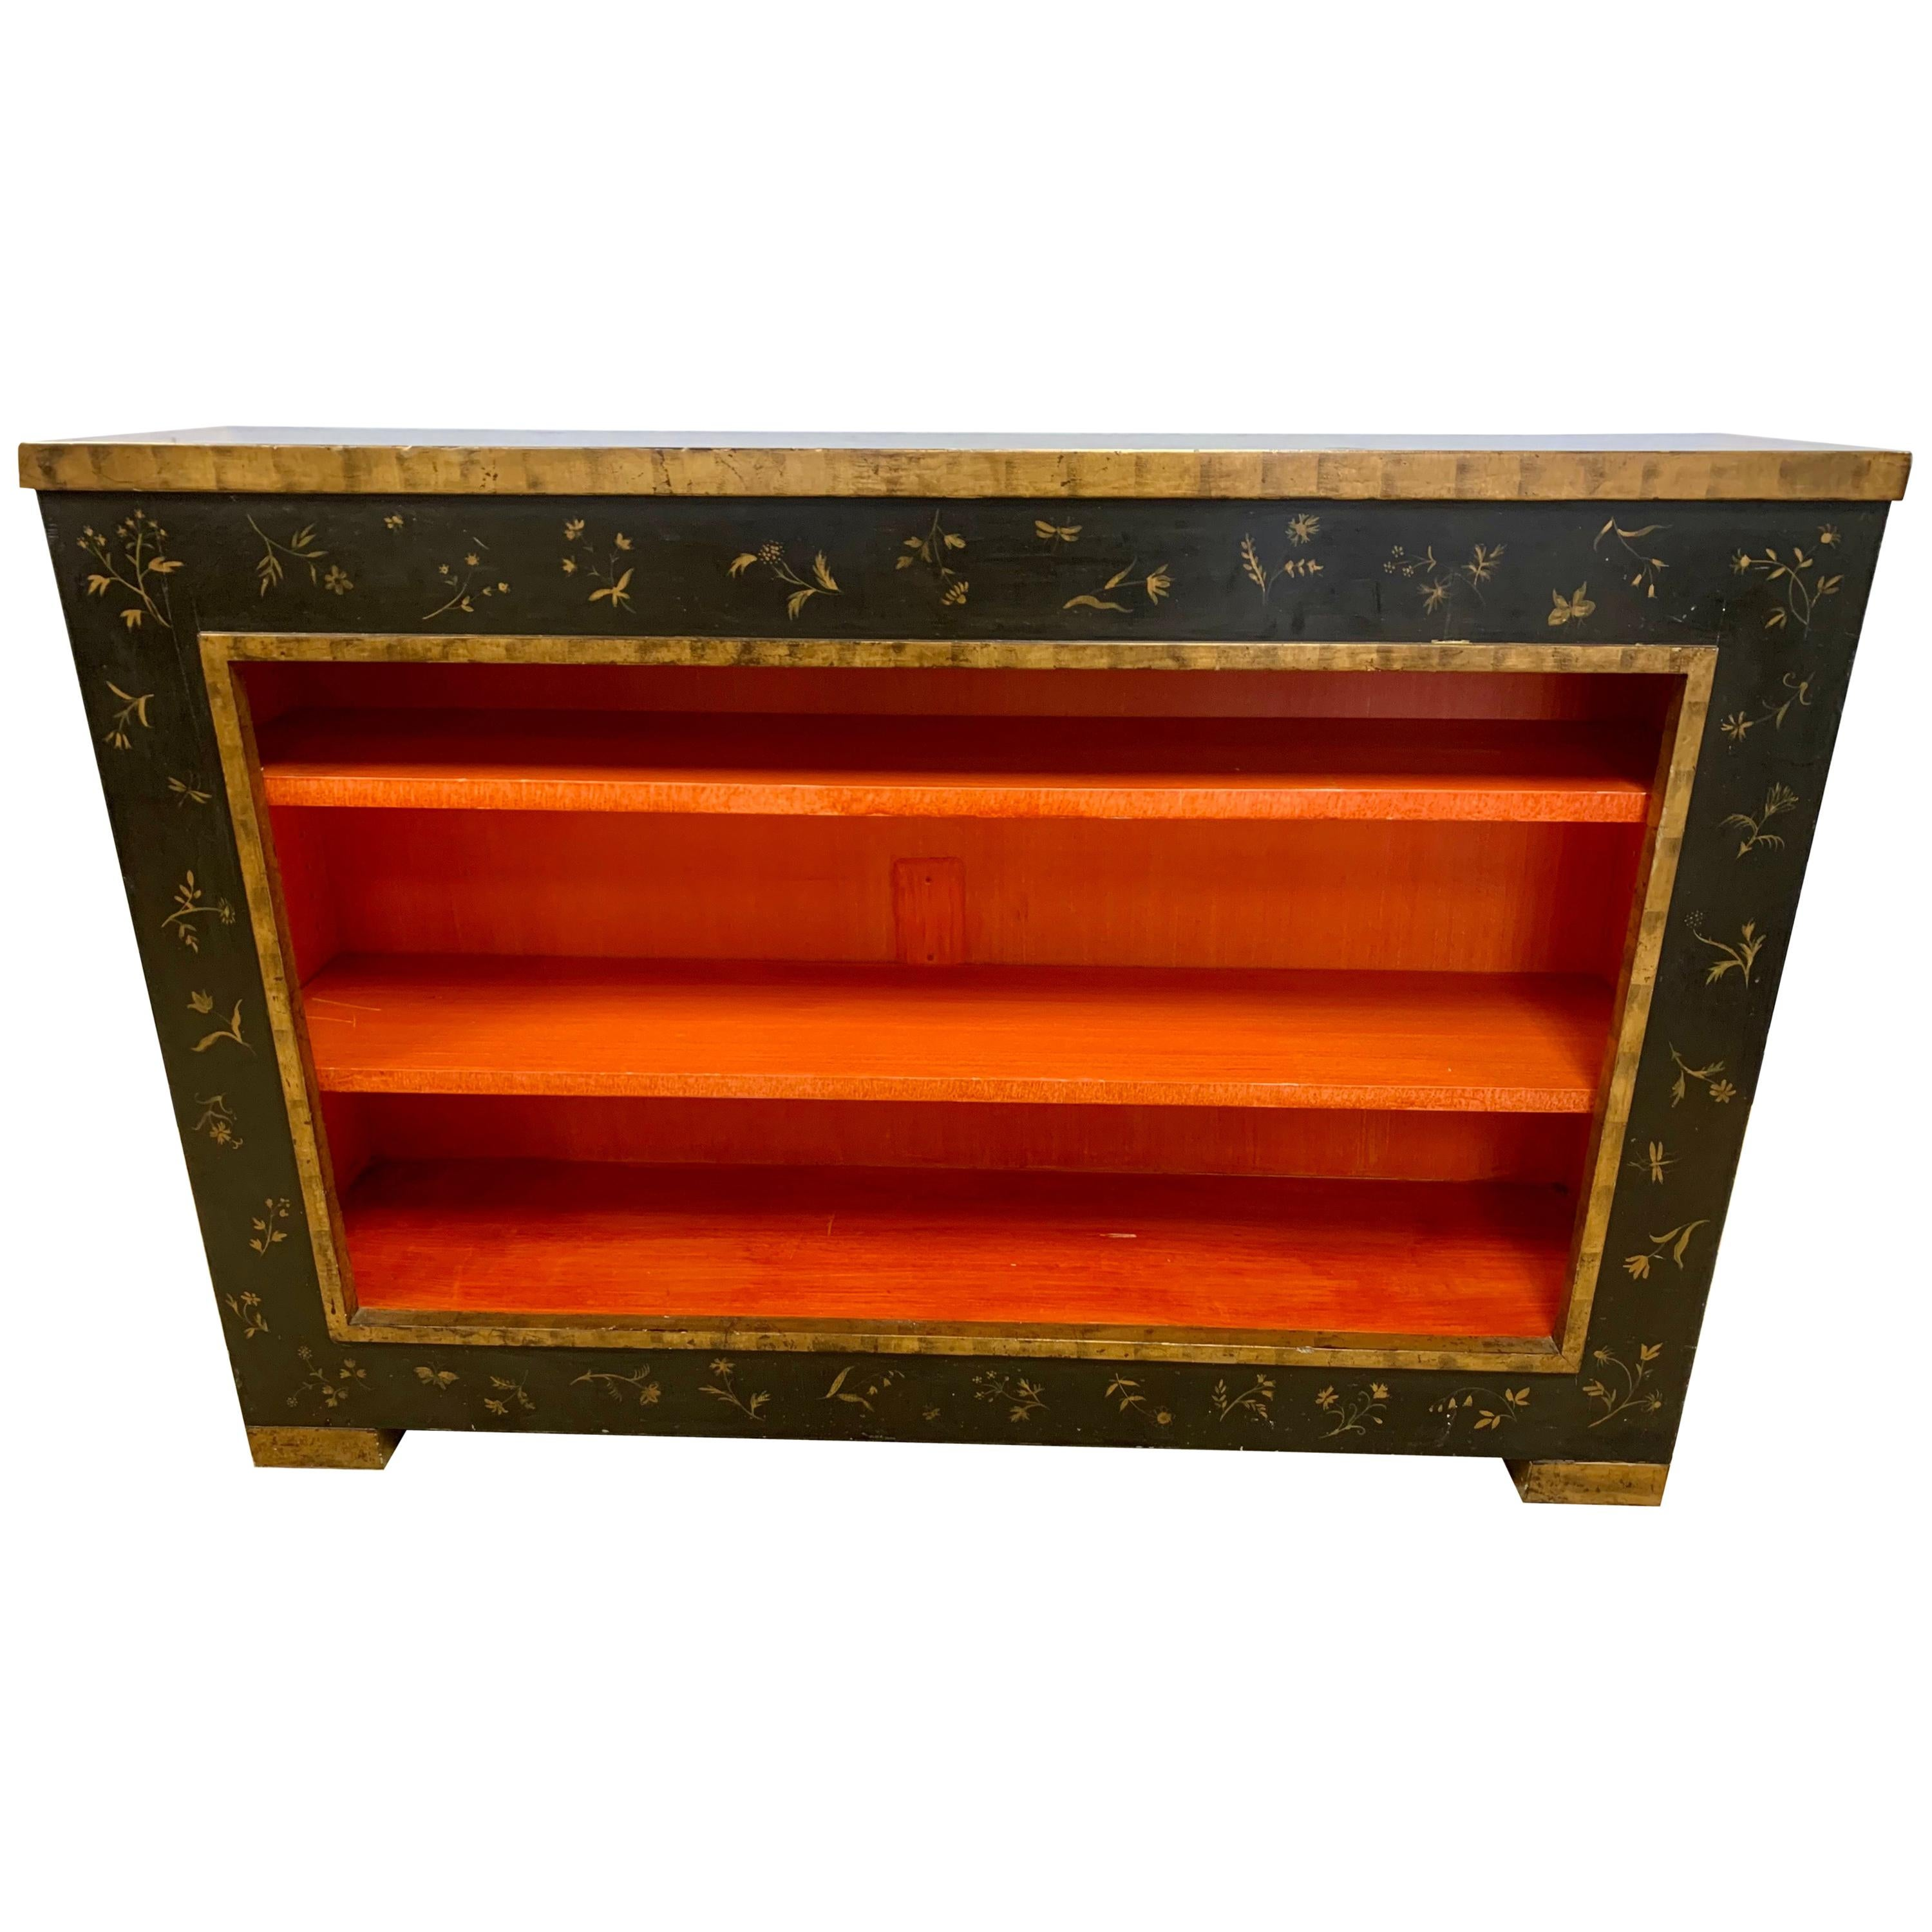 Midcentury Black and Gold with Hermès Orange Interior Chinoiserie Cabinet